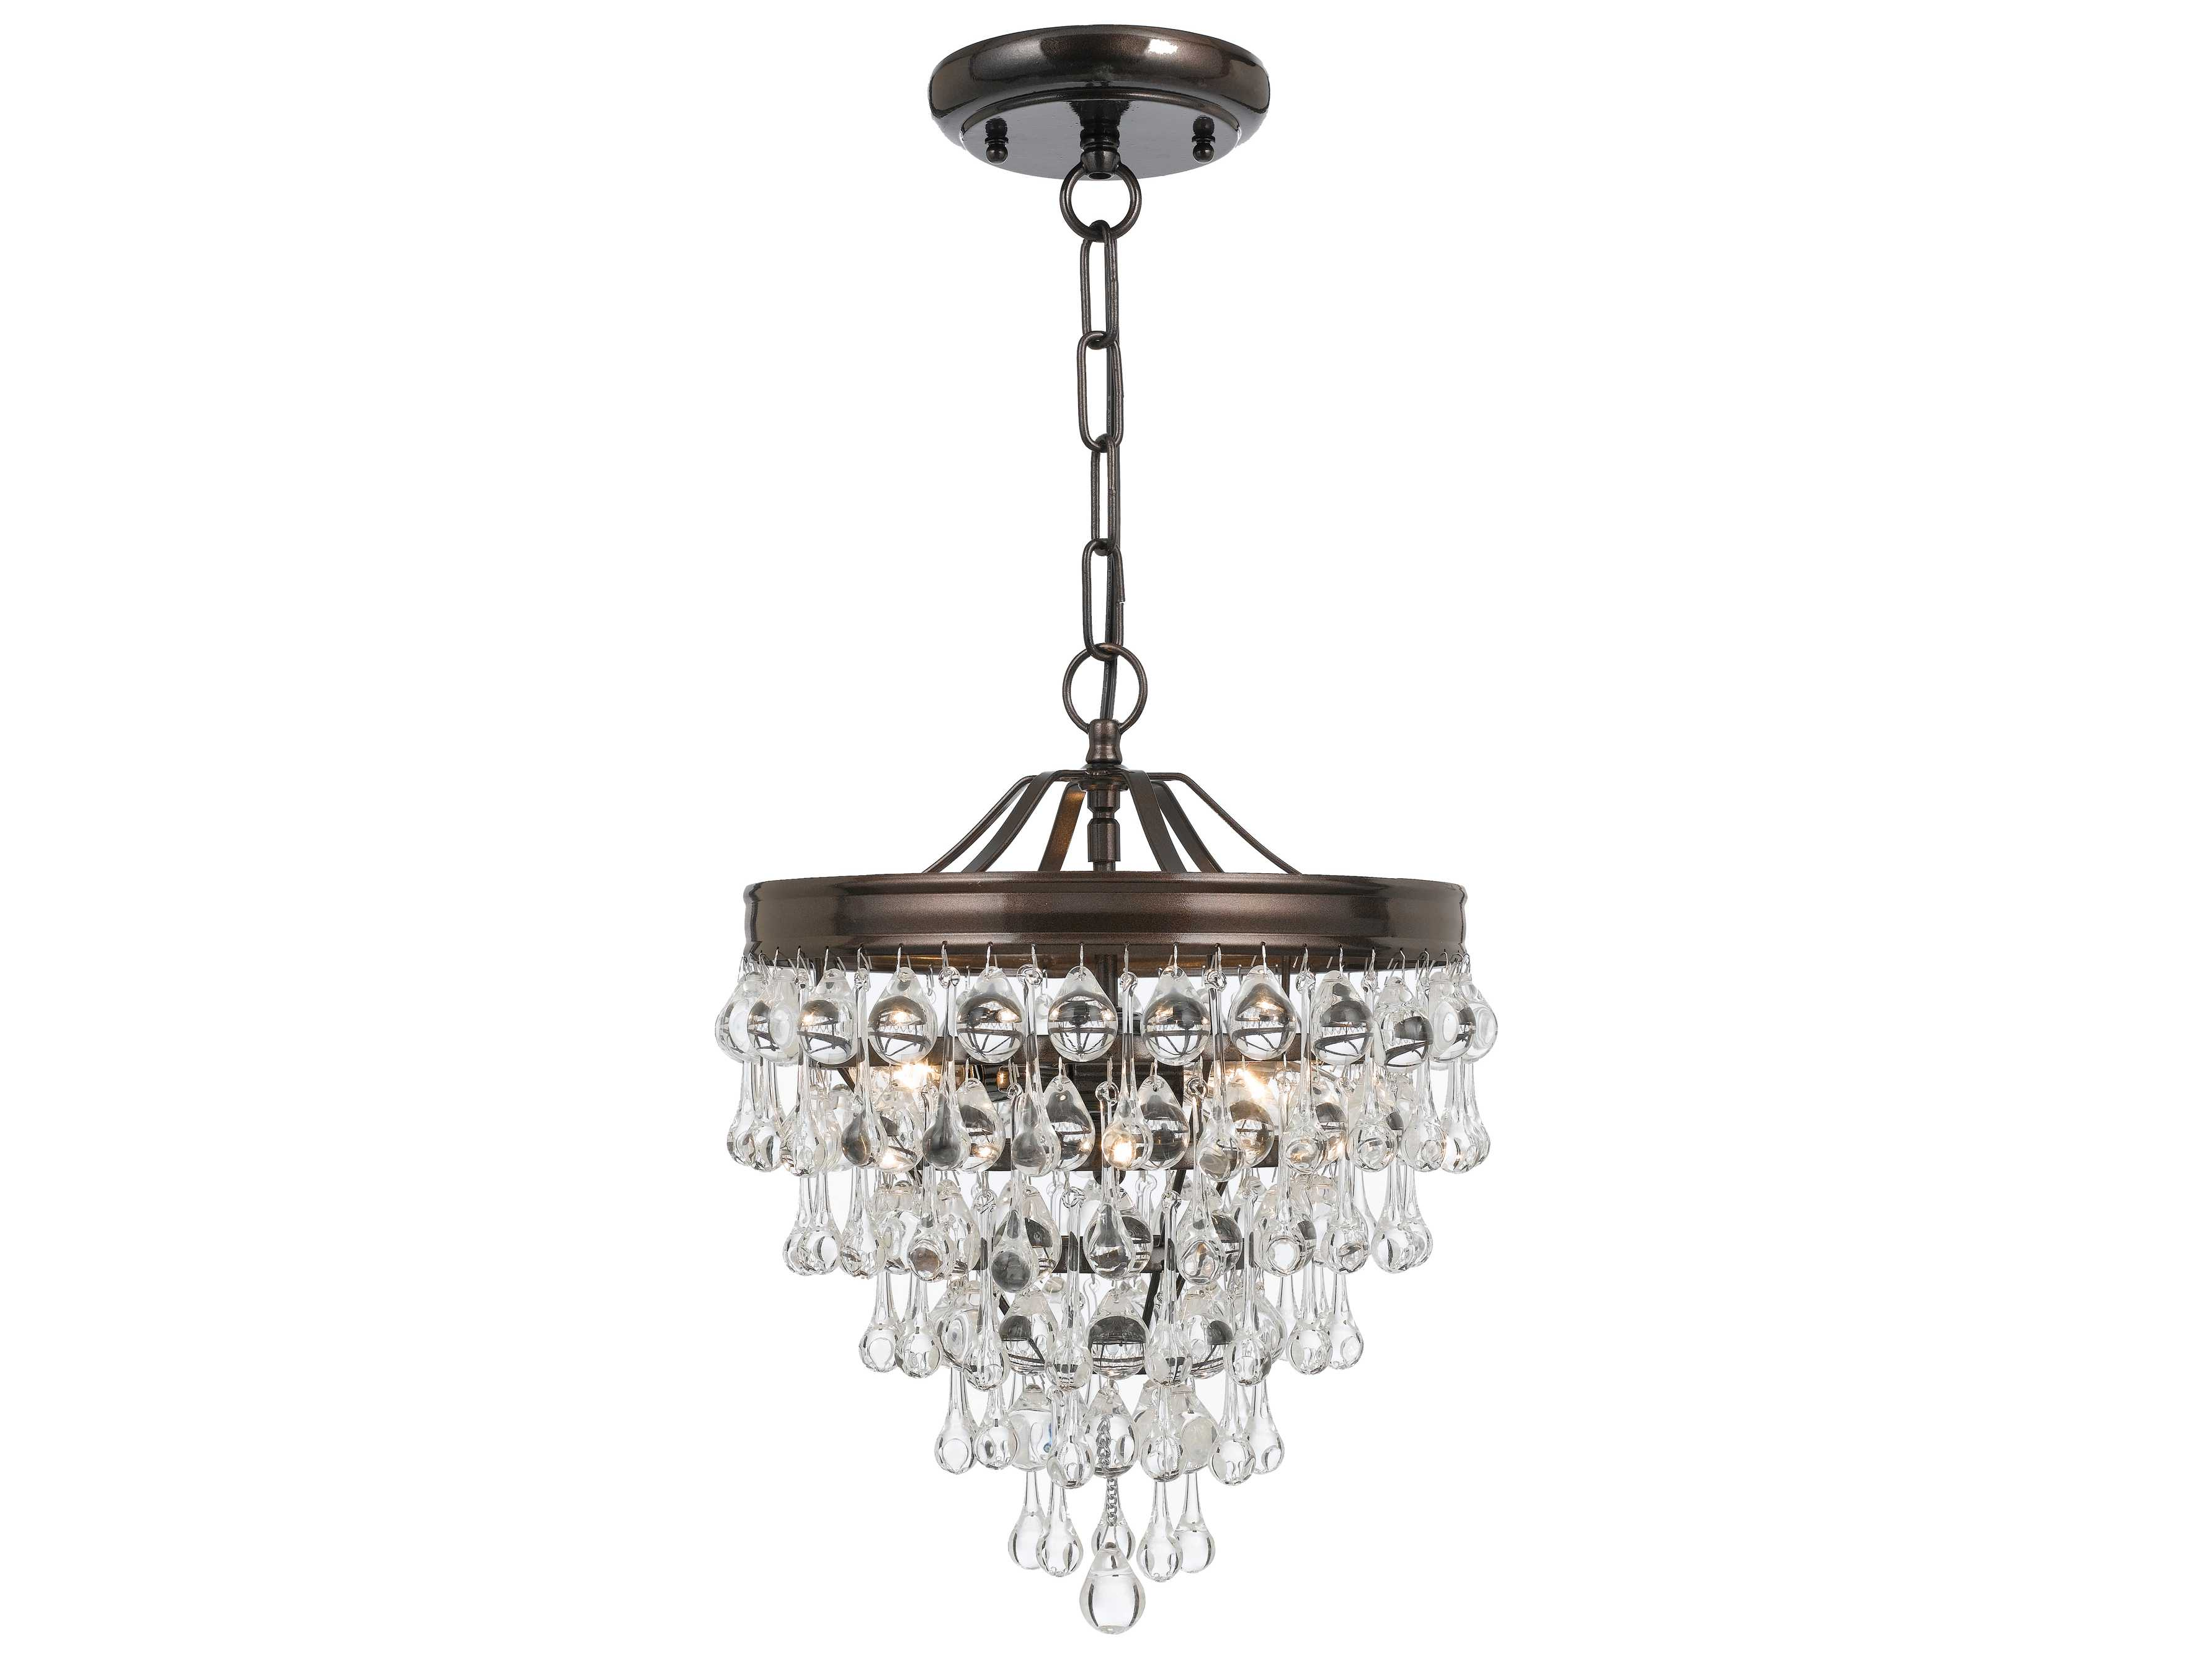 Crystorama Calypso Three Light Pendant Light